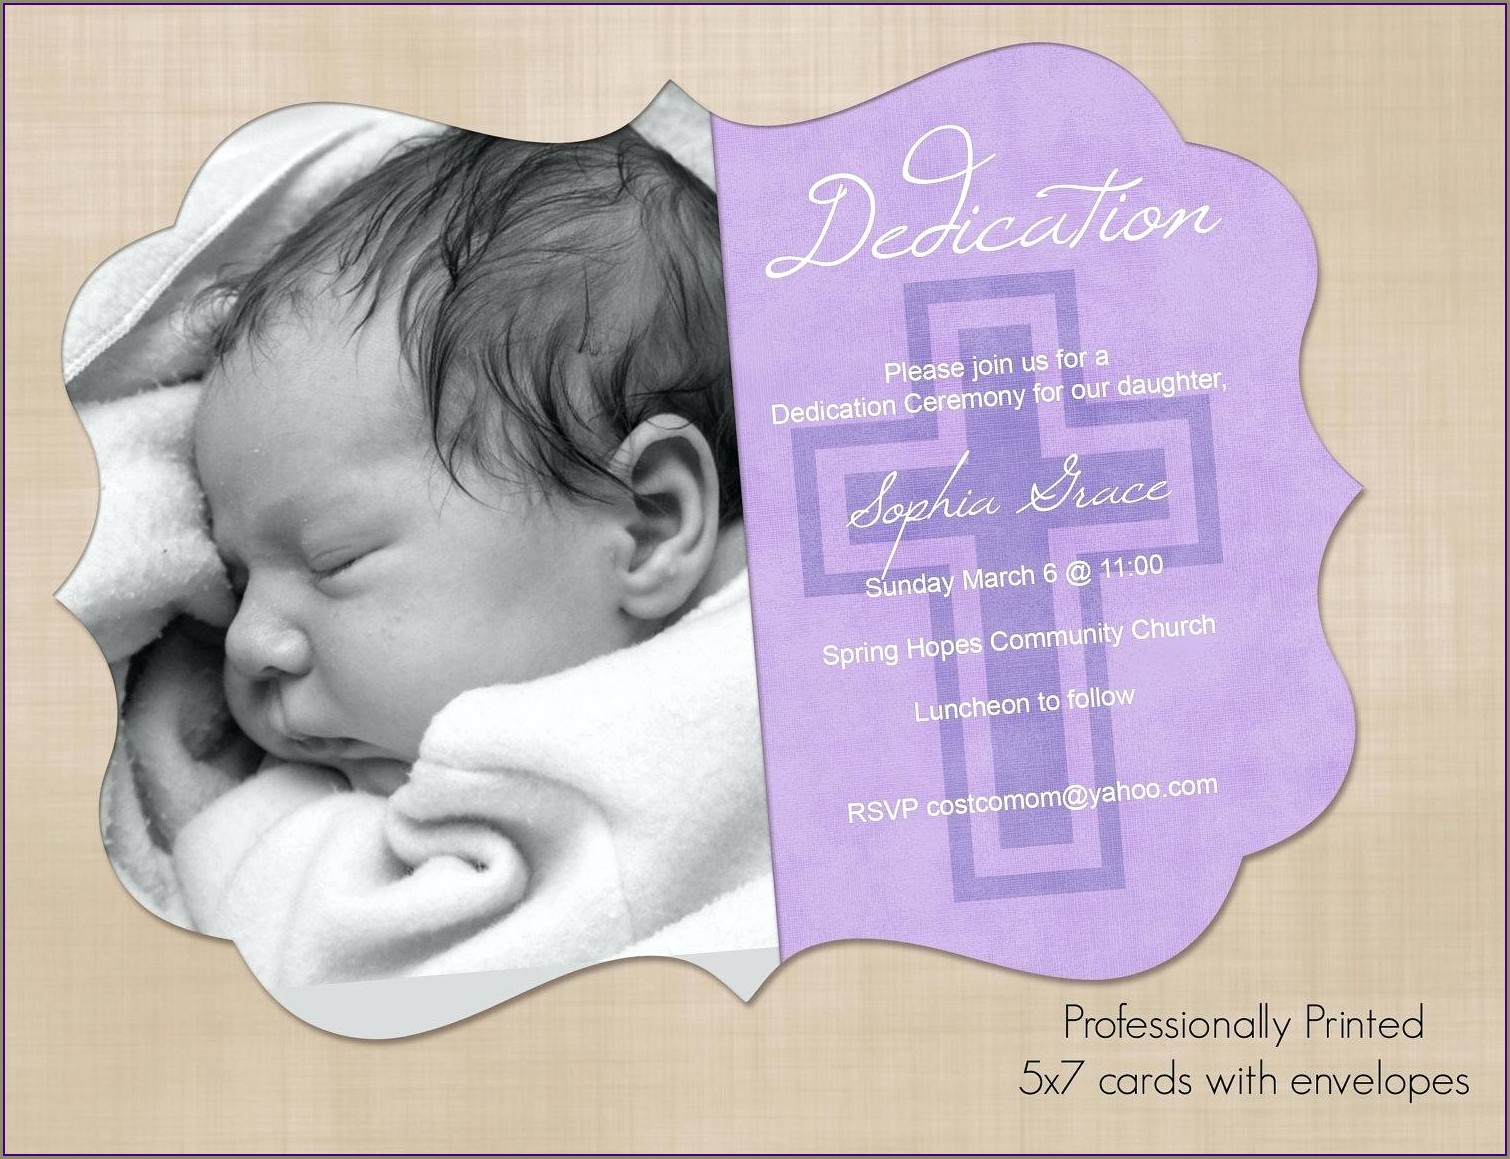 New Church Dedication Invitation Sample Cards